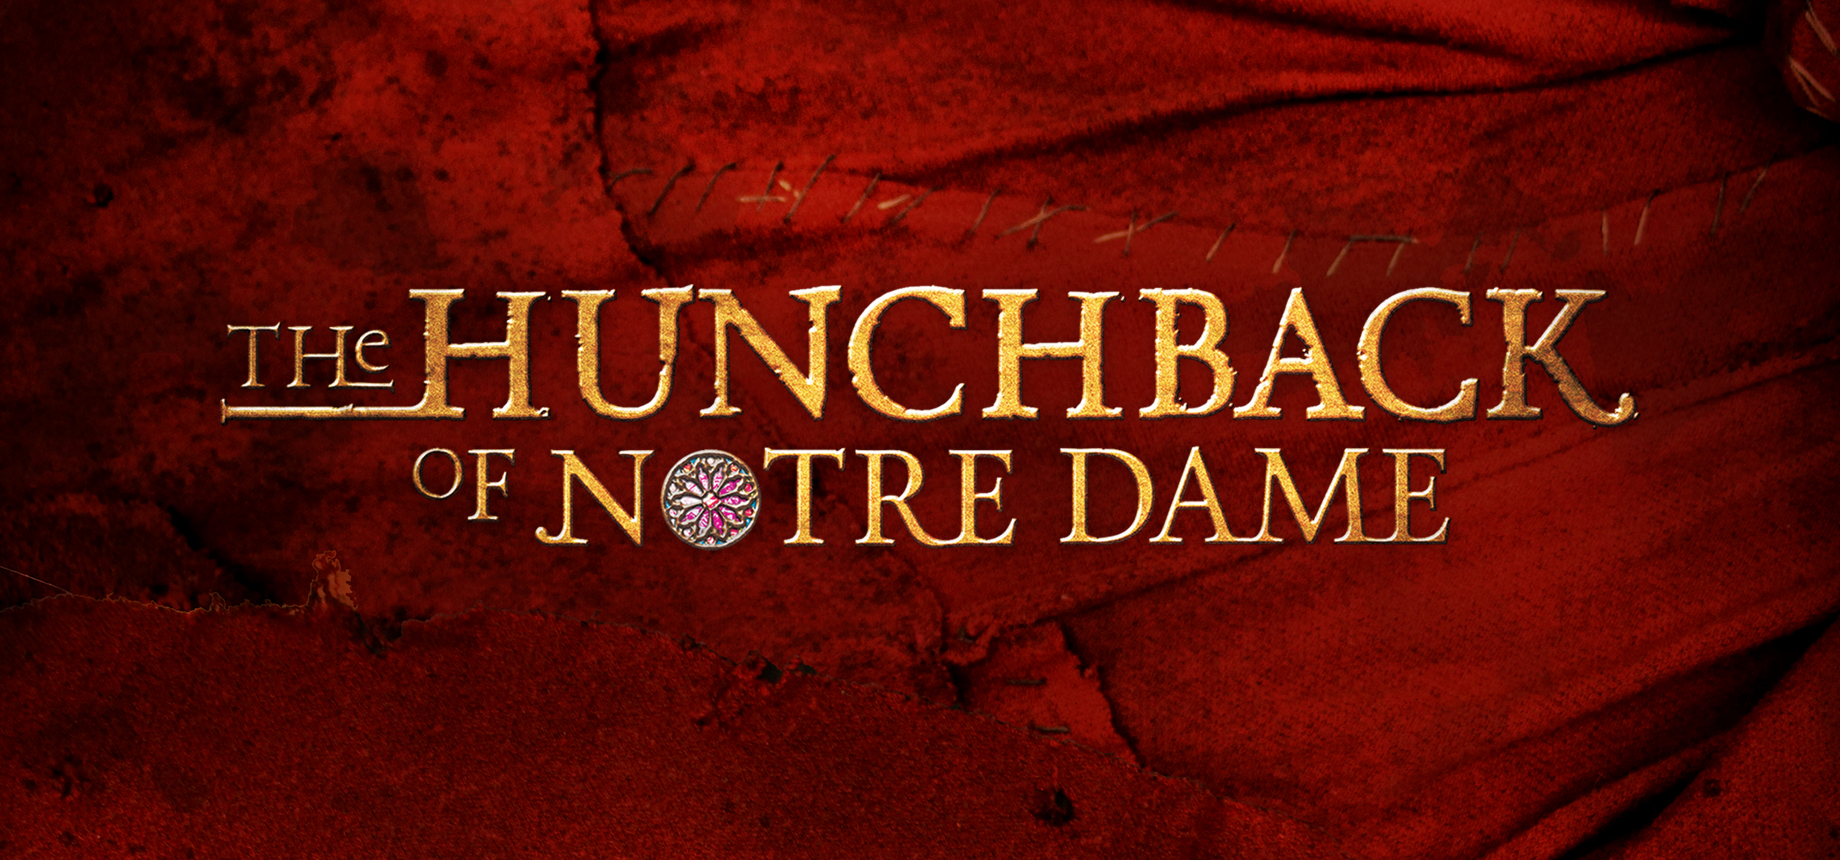 「notre dame musical」の画像検索結果